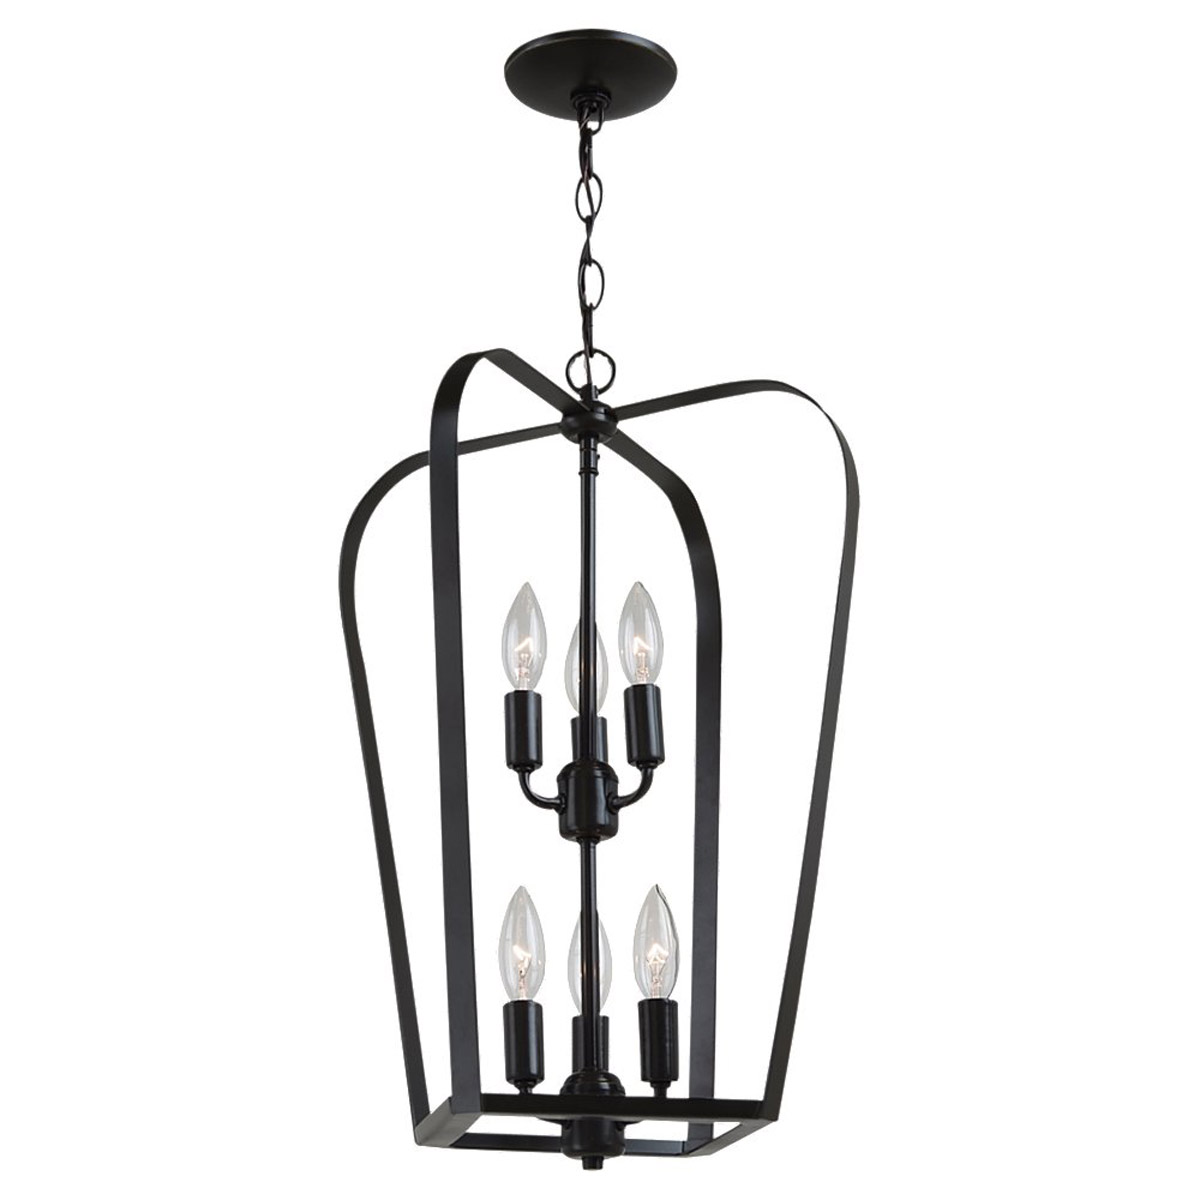 Sea Gull Lighting Windgate 6 Light Foyer Pendant in Heirloom Bronze 54941-782